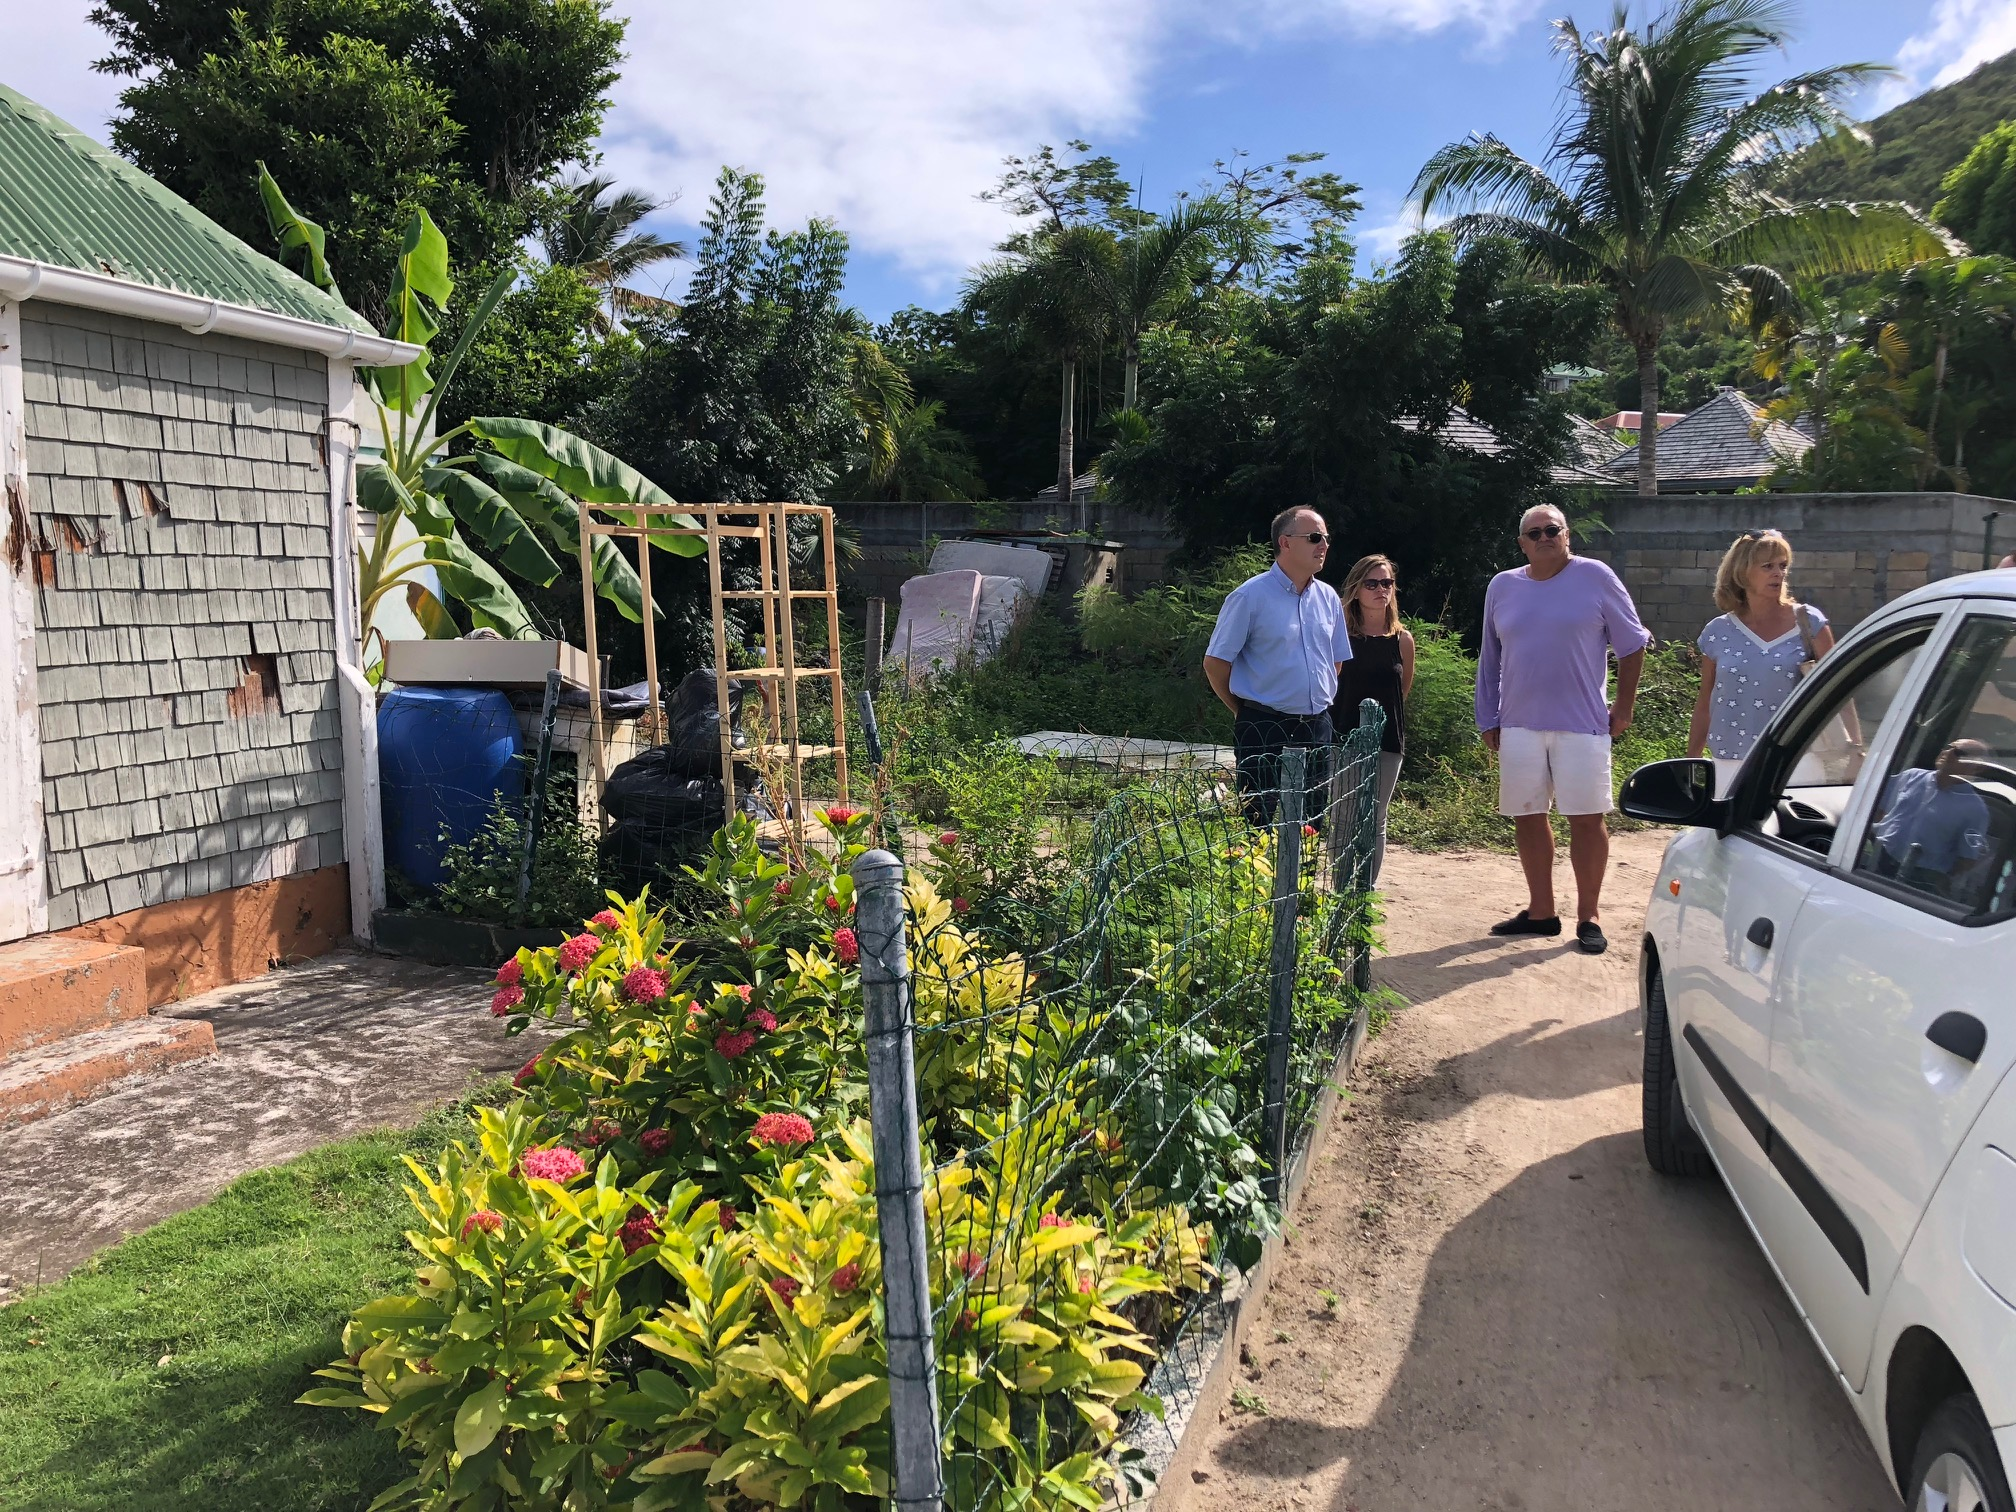 st barth red cross and help st barth